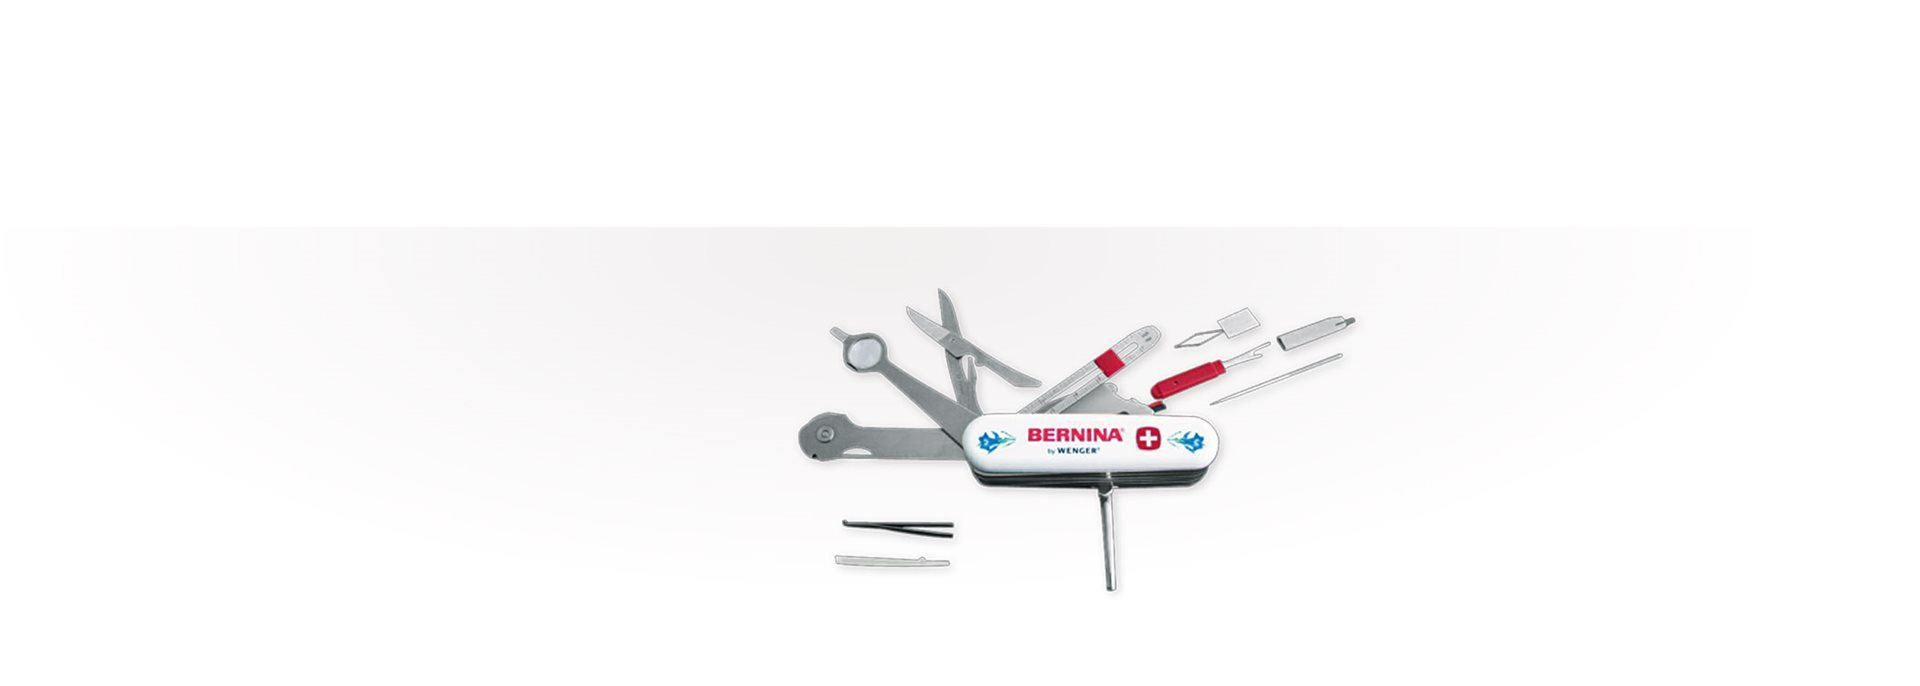 Picture: BERNINA Swiss Sew Essential Tool